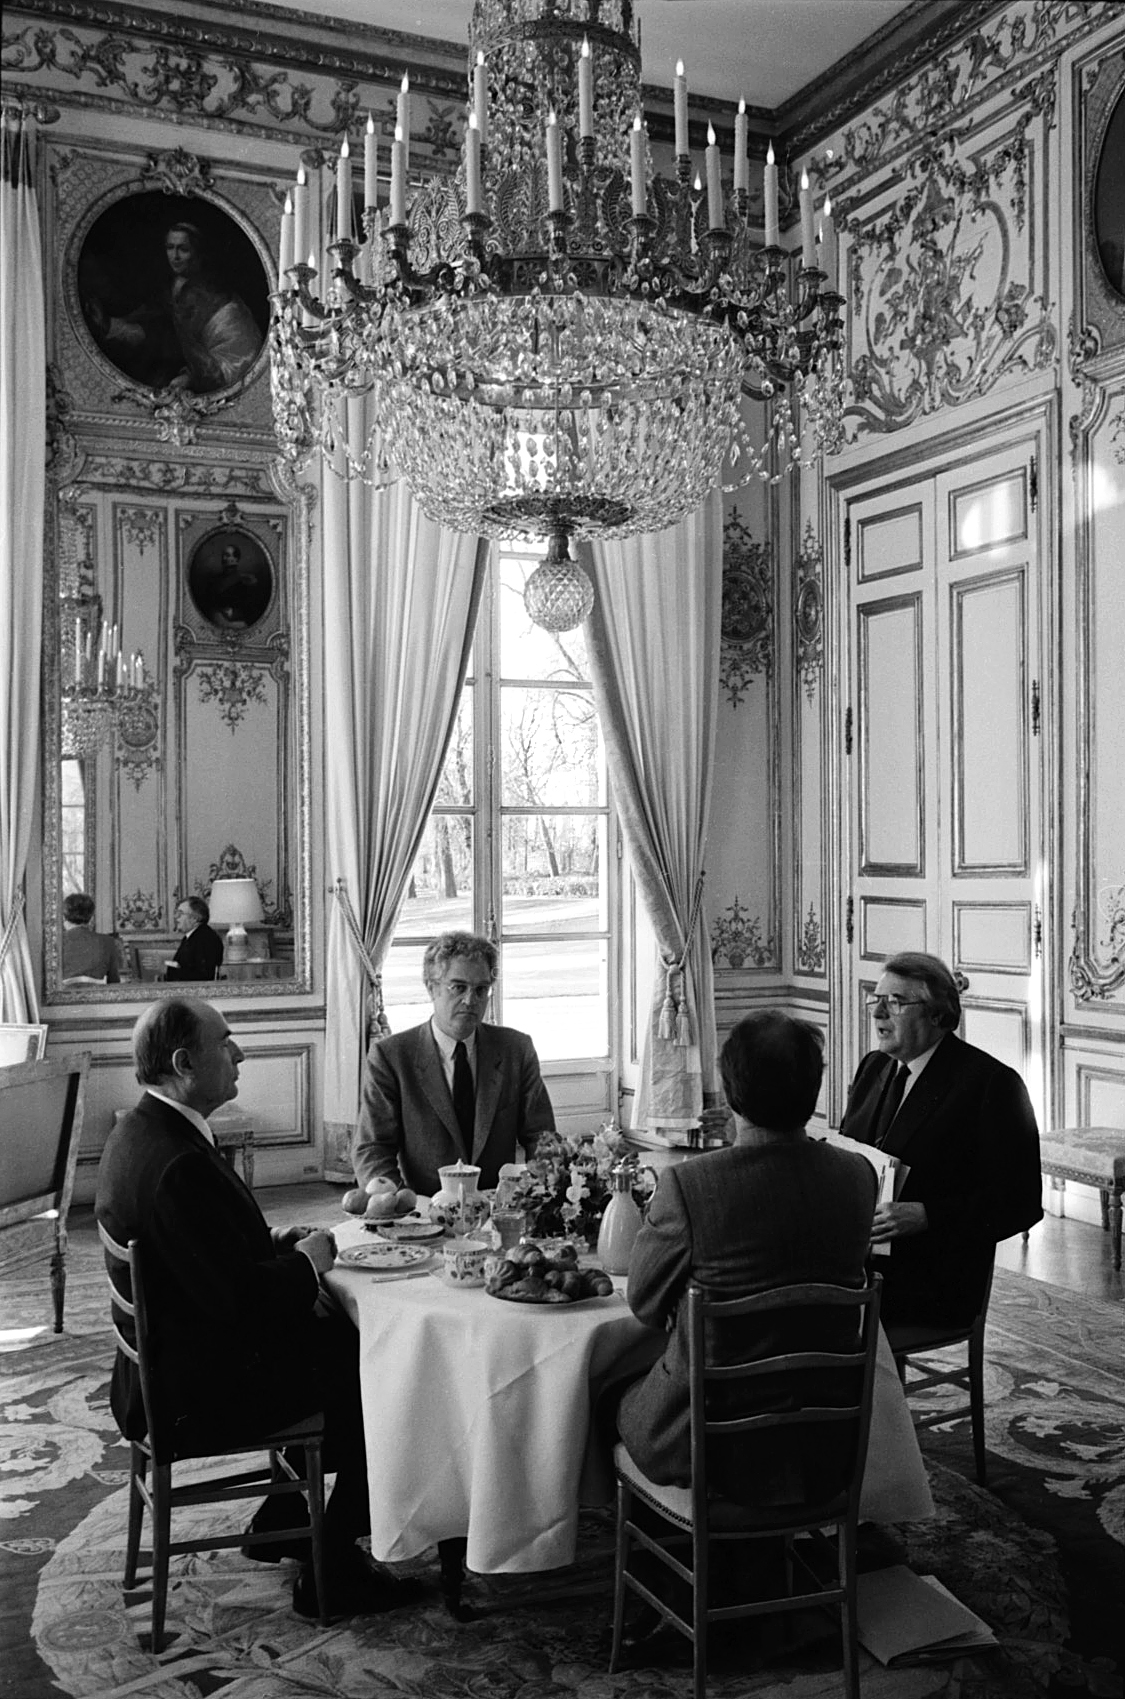 Breakfast at the Elysee Palace.